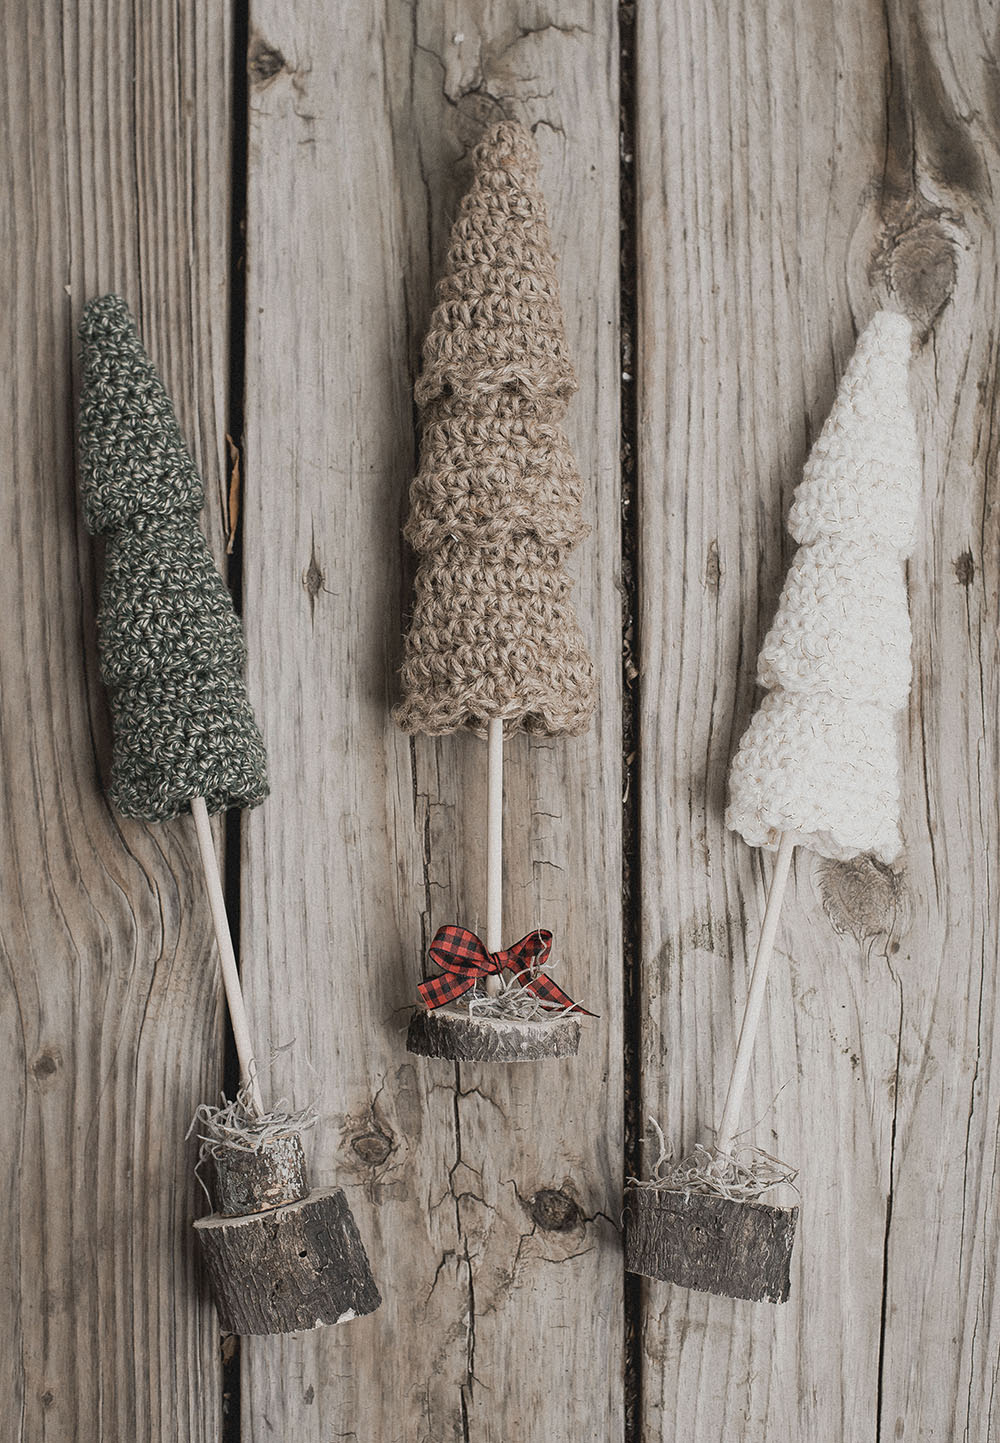 Rustic Christmas Tree Crochet Pattern - Megmade with Love